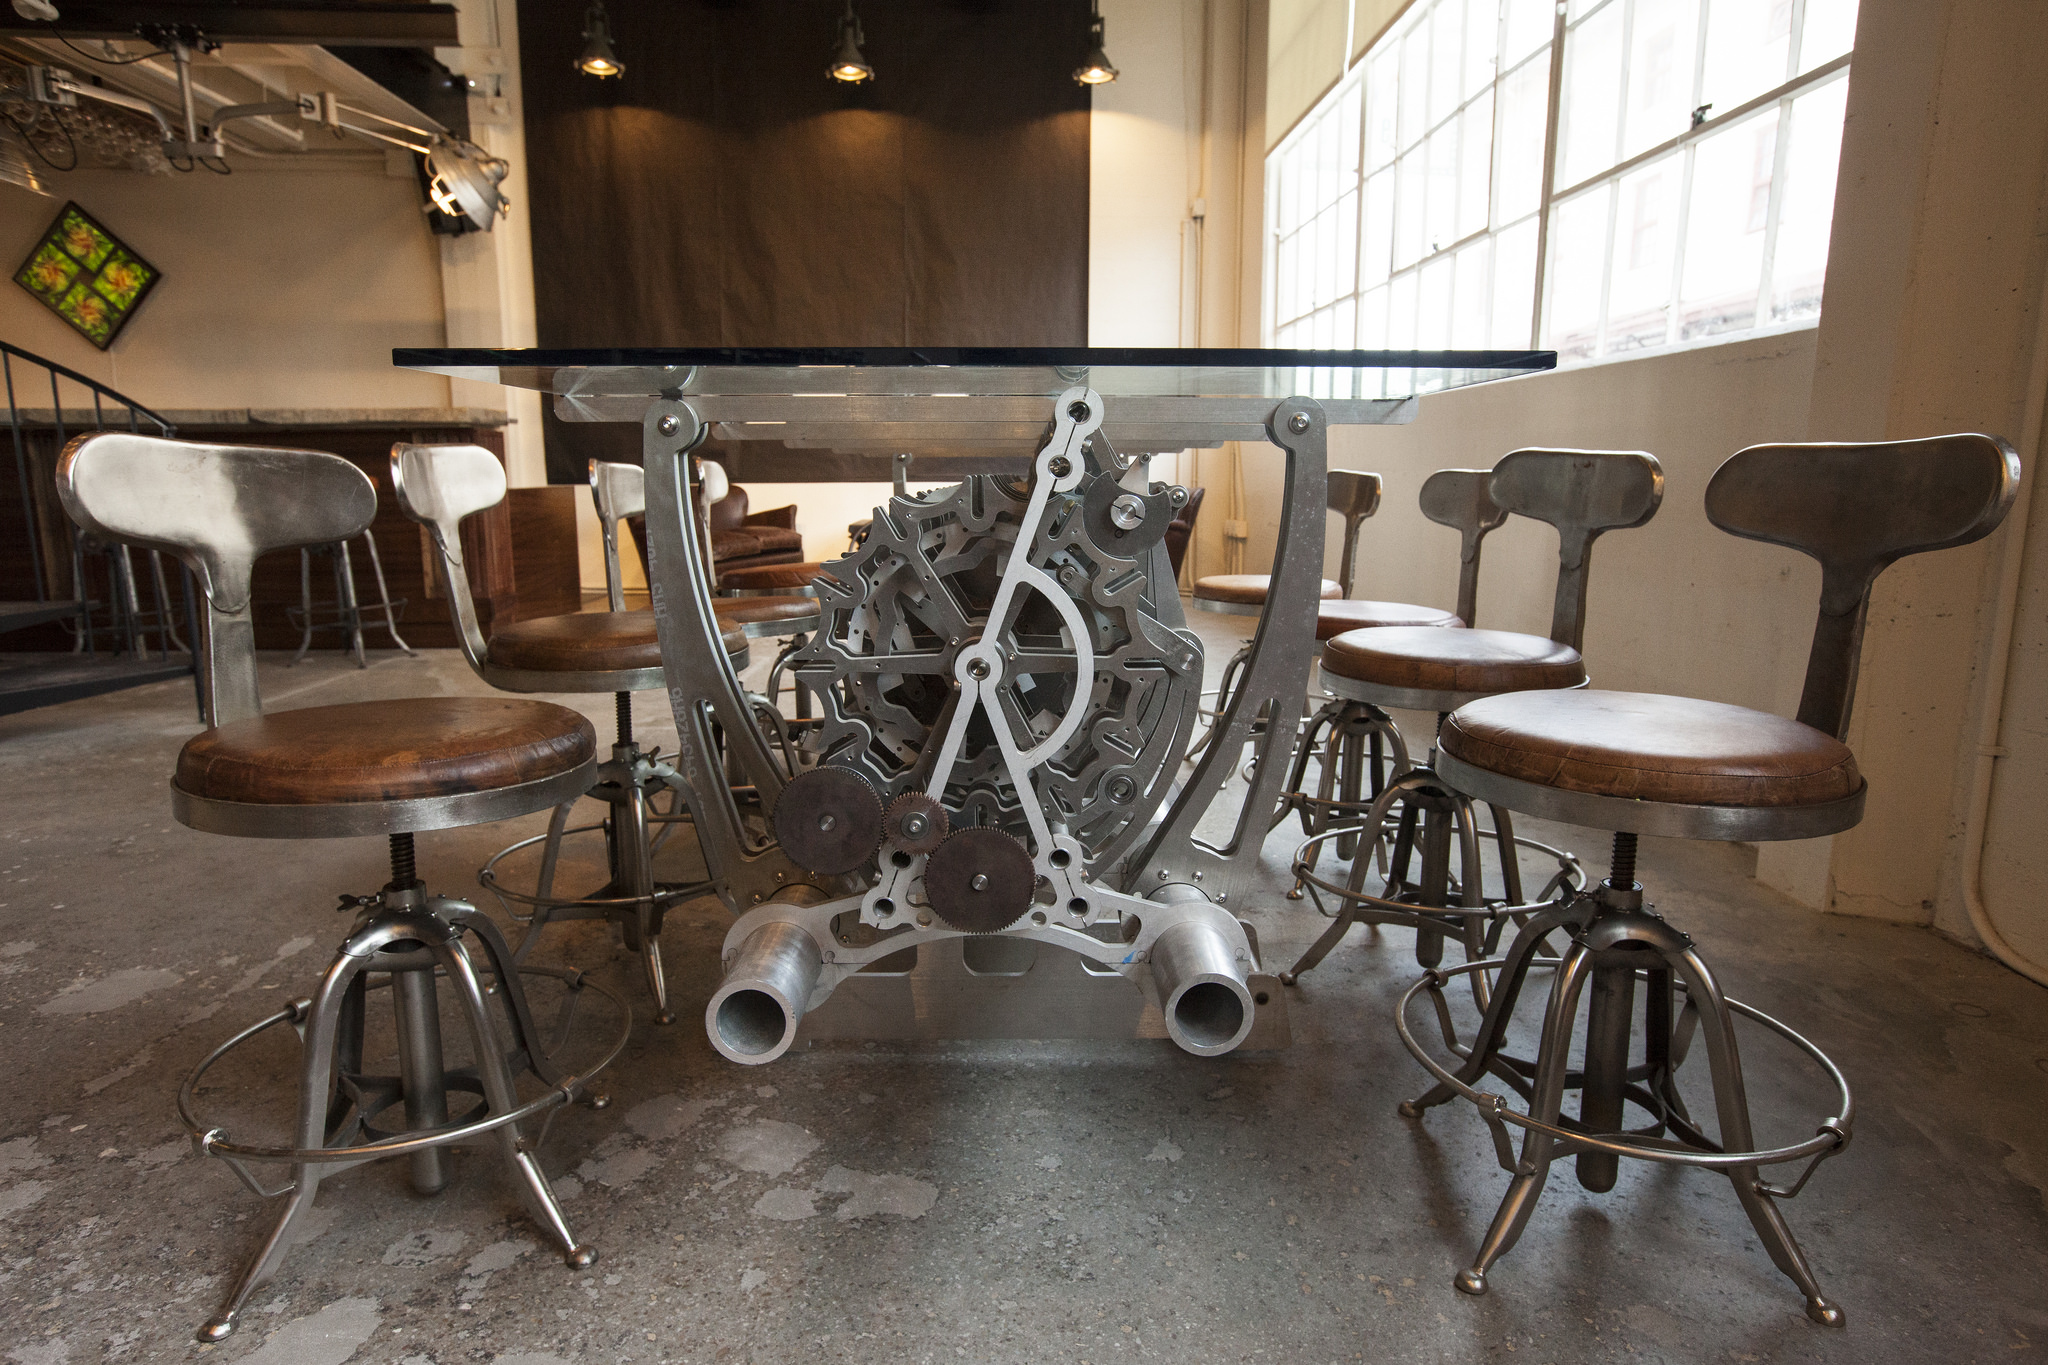 Originally the blacksmith and machine shop for Fort Mason, our design brings a modern spirit to the 1930's era history of the space. Vintage stools and historic concrete floors speak to the original machine-shop space of the space. While a palette of leather, walnut, and metal bring the 30's into focus, as the modern artifacts of the Long Now bring us into the present.